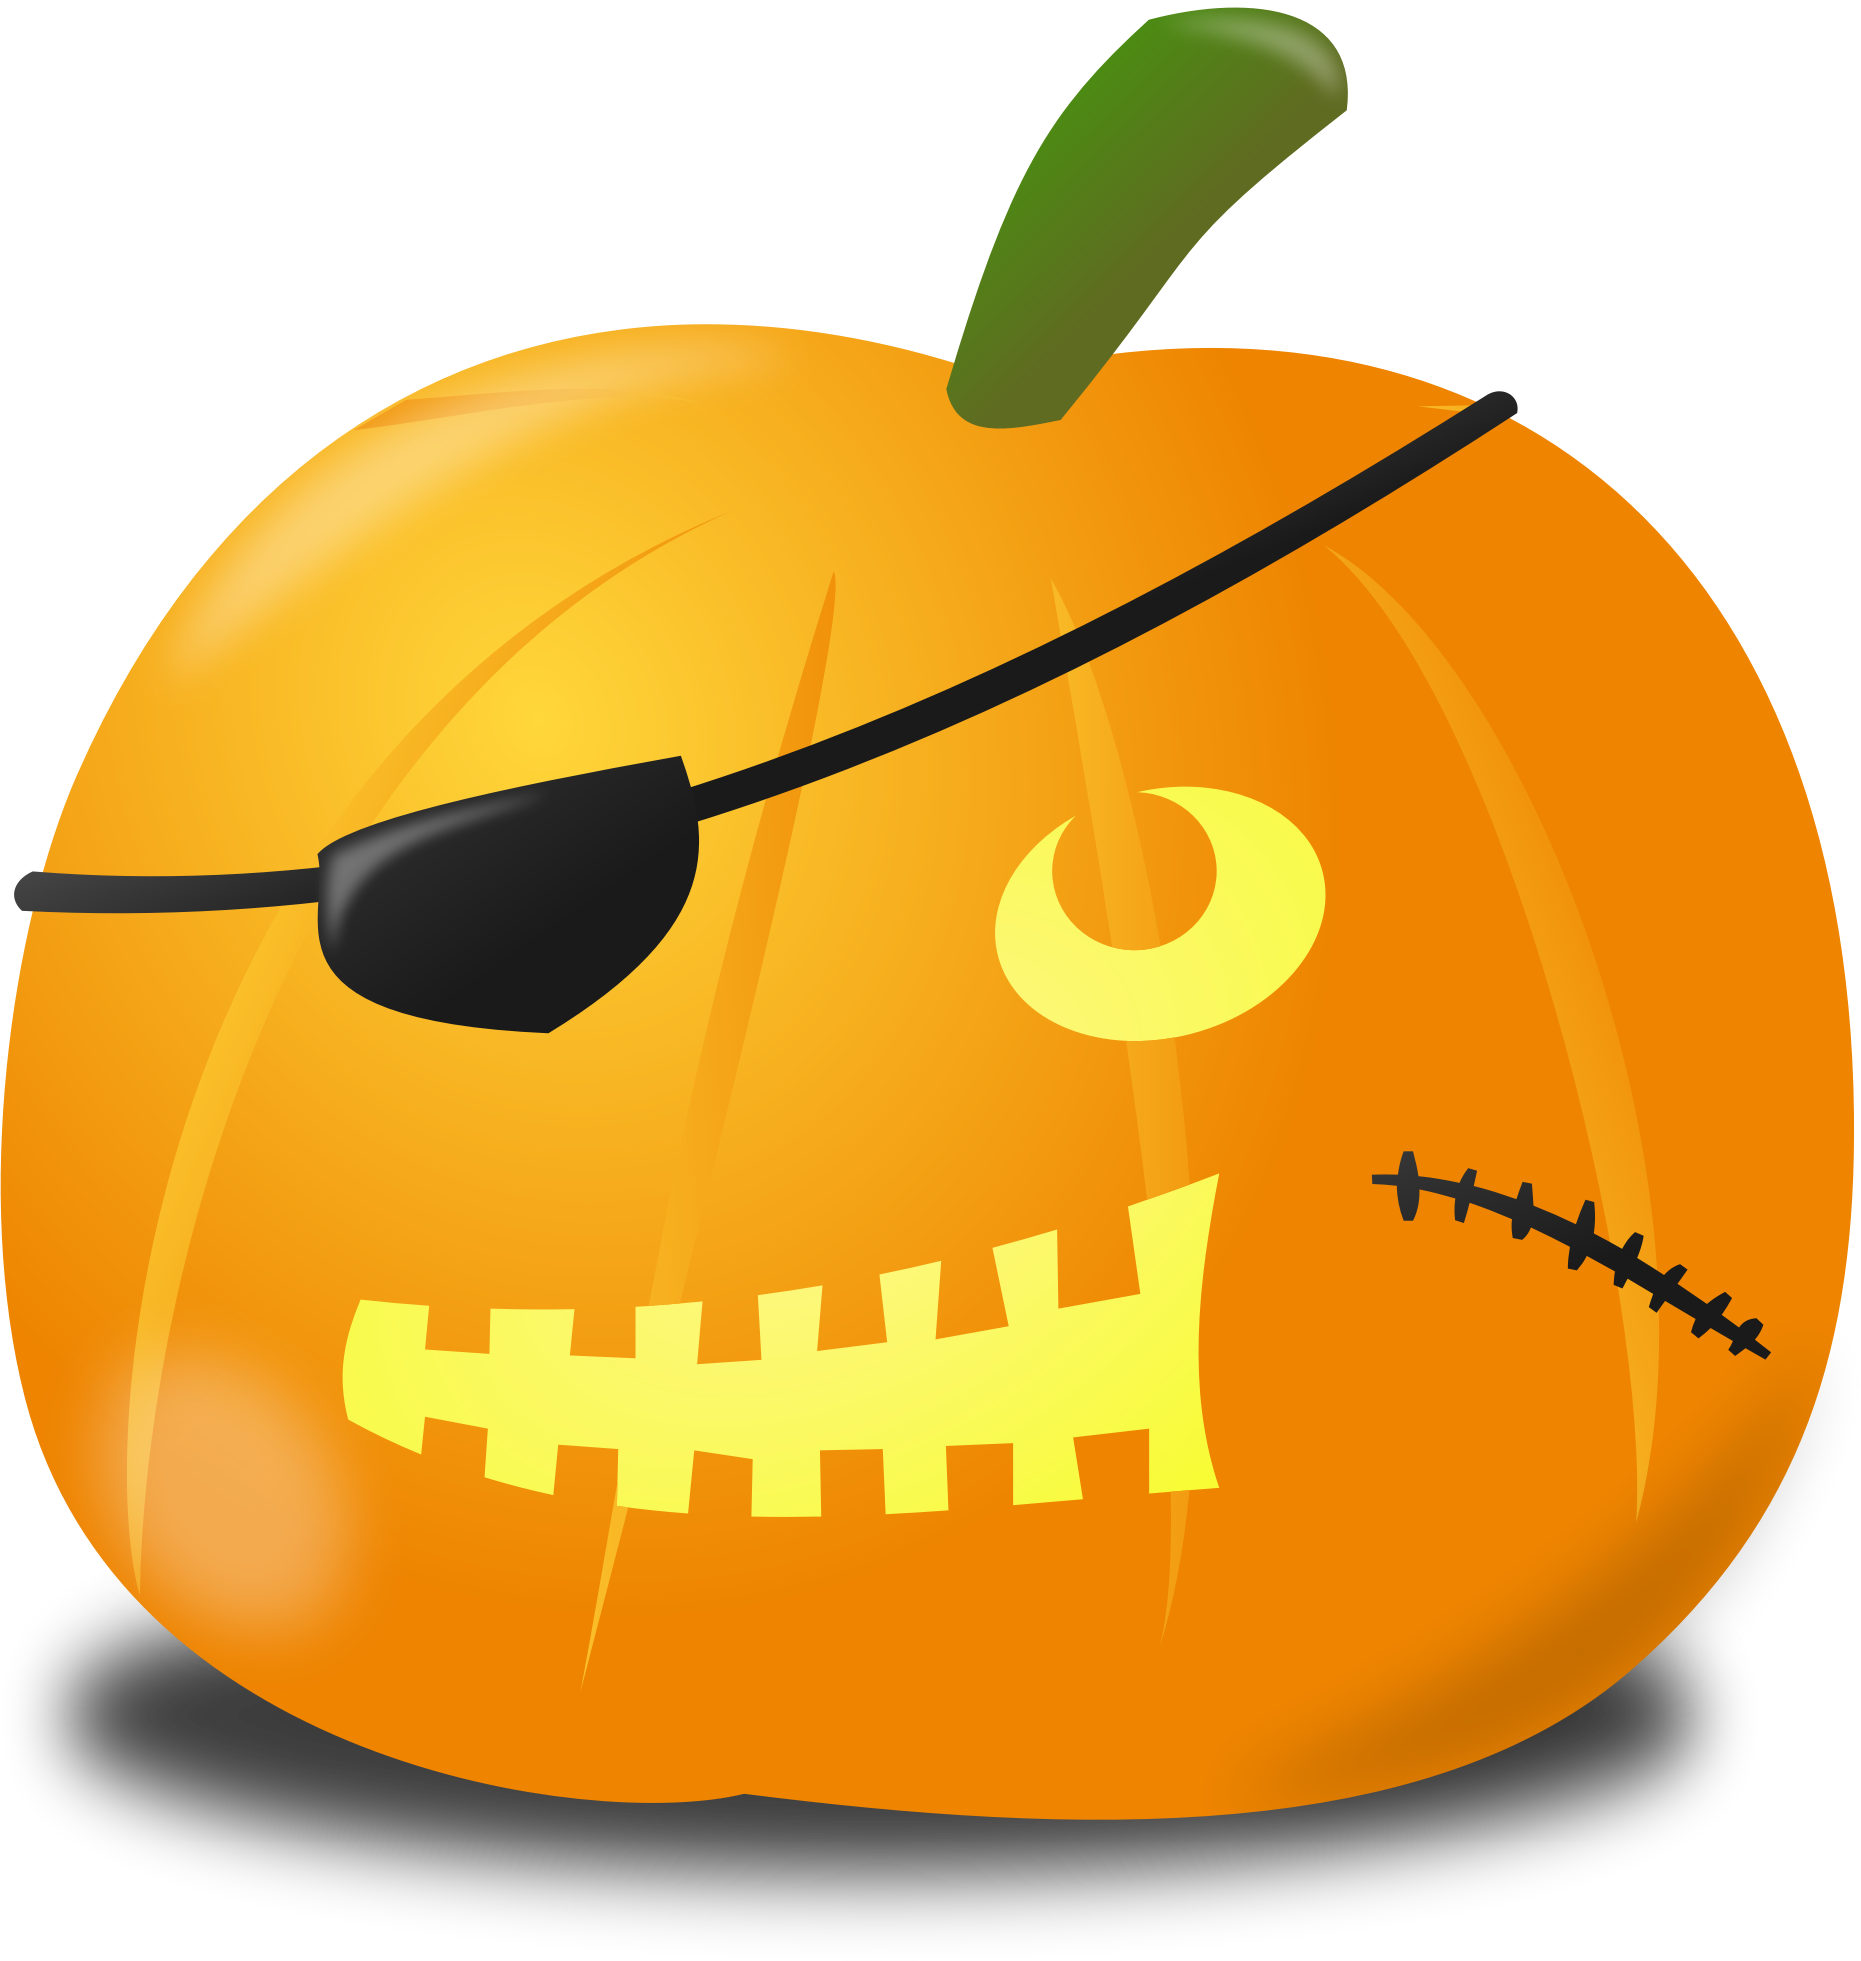 Pirate big image png. Mouth clipart pumpkin